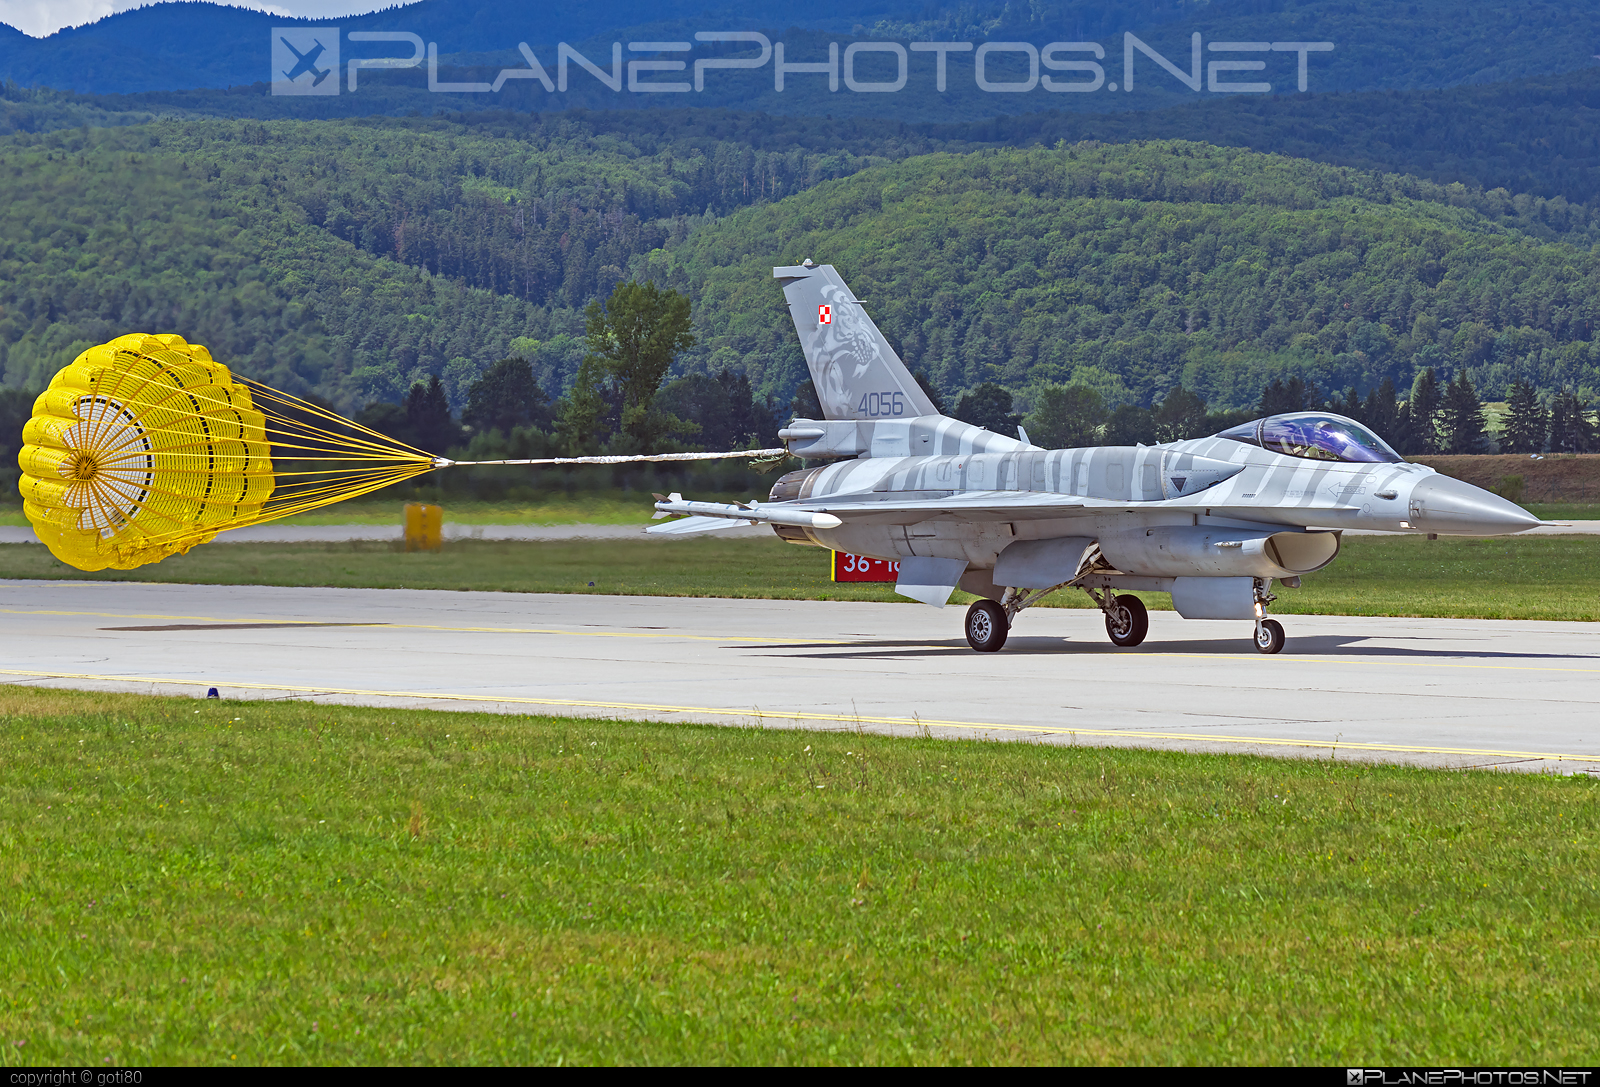 Lockheed Martin F-16CJ Fighting Falcon - 4056 operated by Siły Powietrzne Rzeczypospolitej Polskiej (Polish Air Force) #f16 #f16cj #fightingfalcon #lockheedmartin #polishairforce #siaf2019 #silypowietrzne